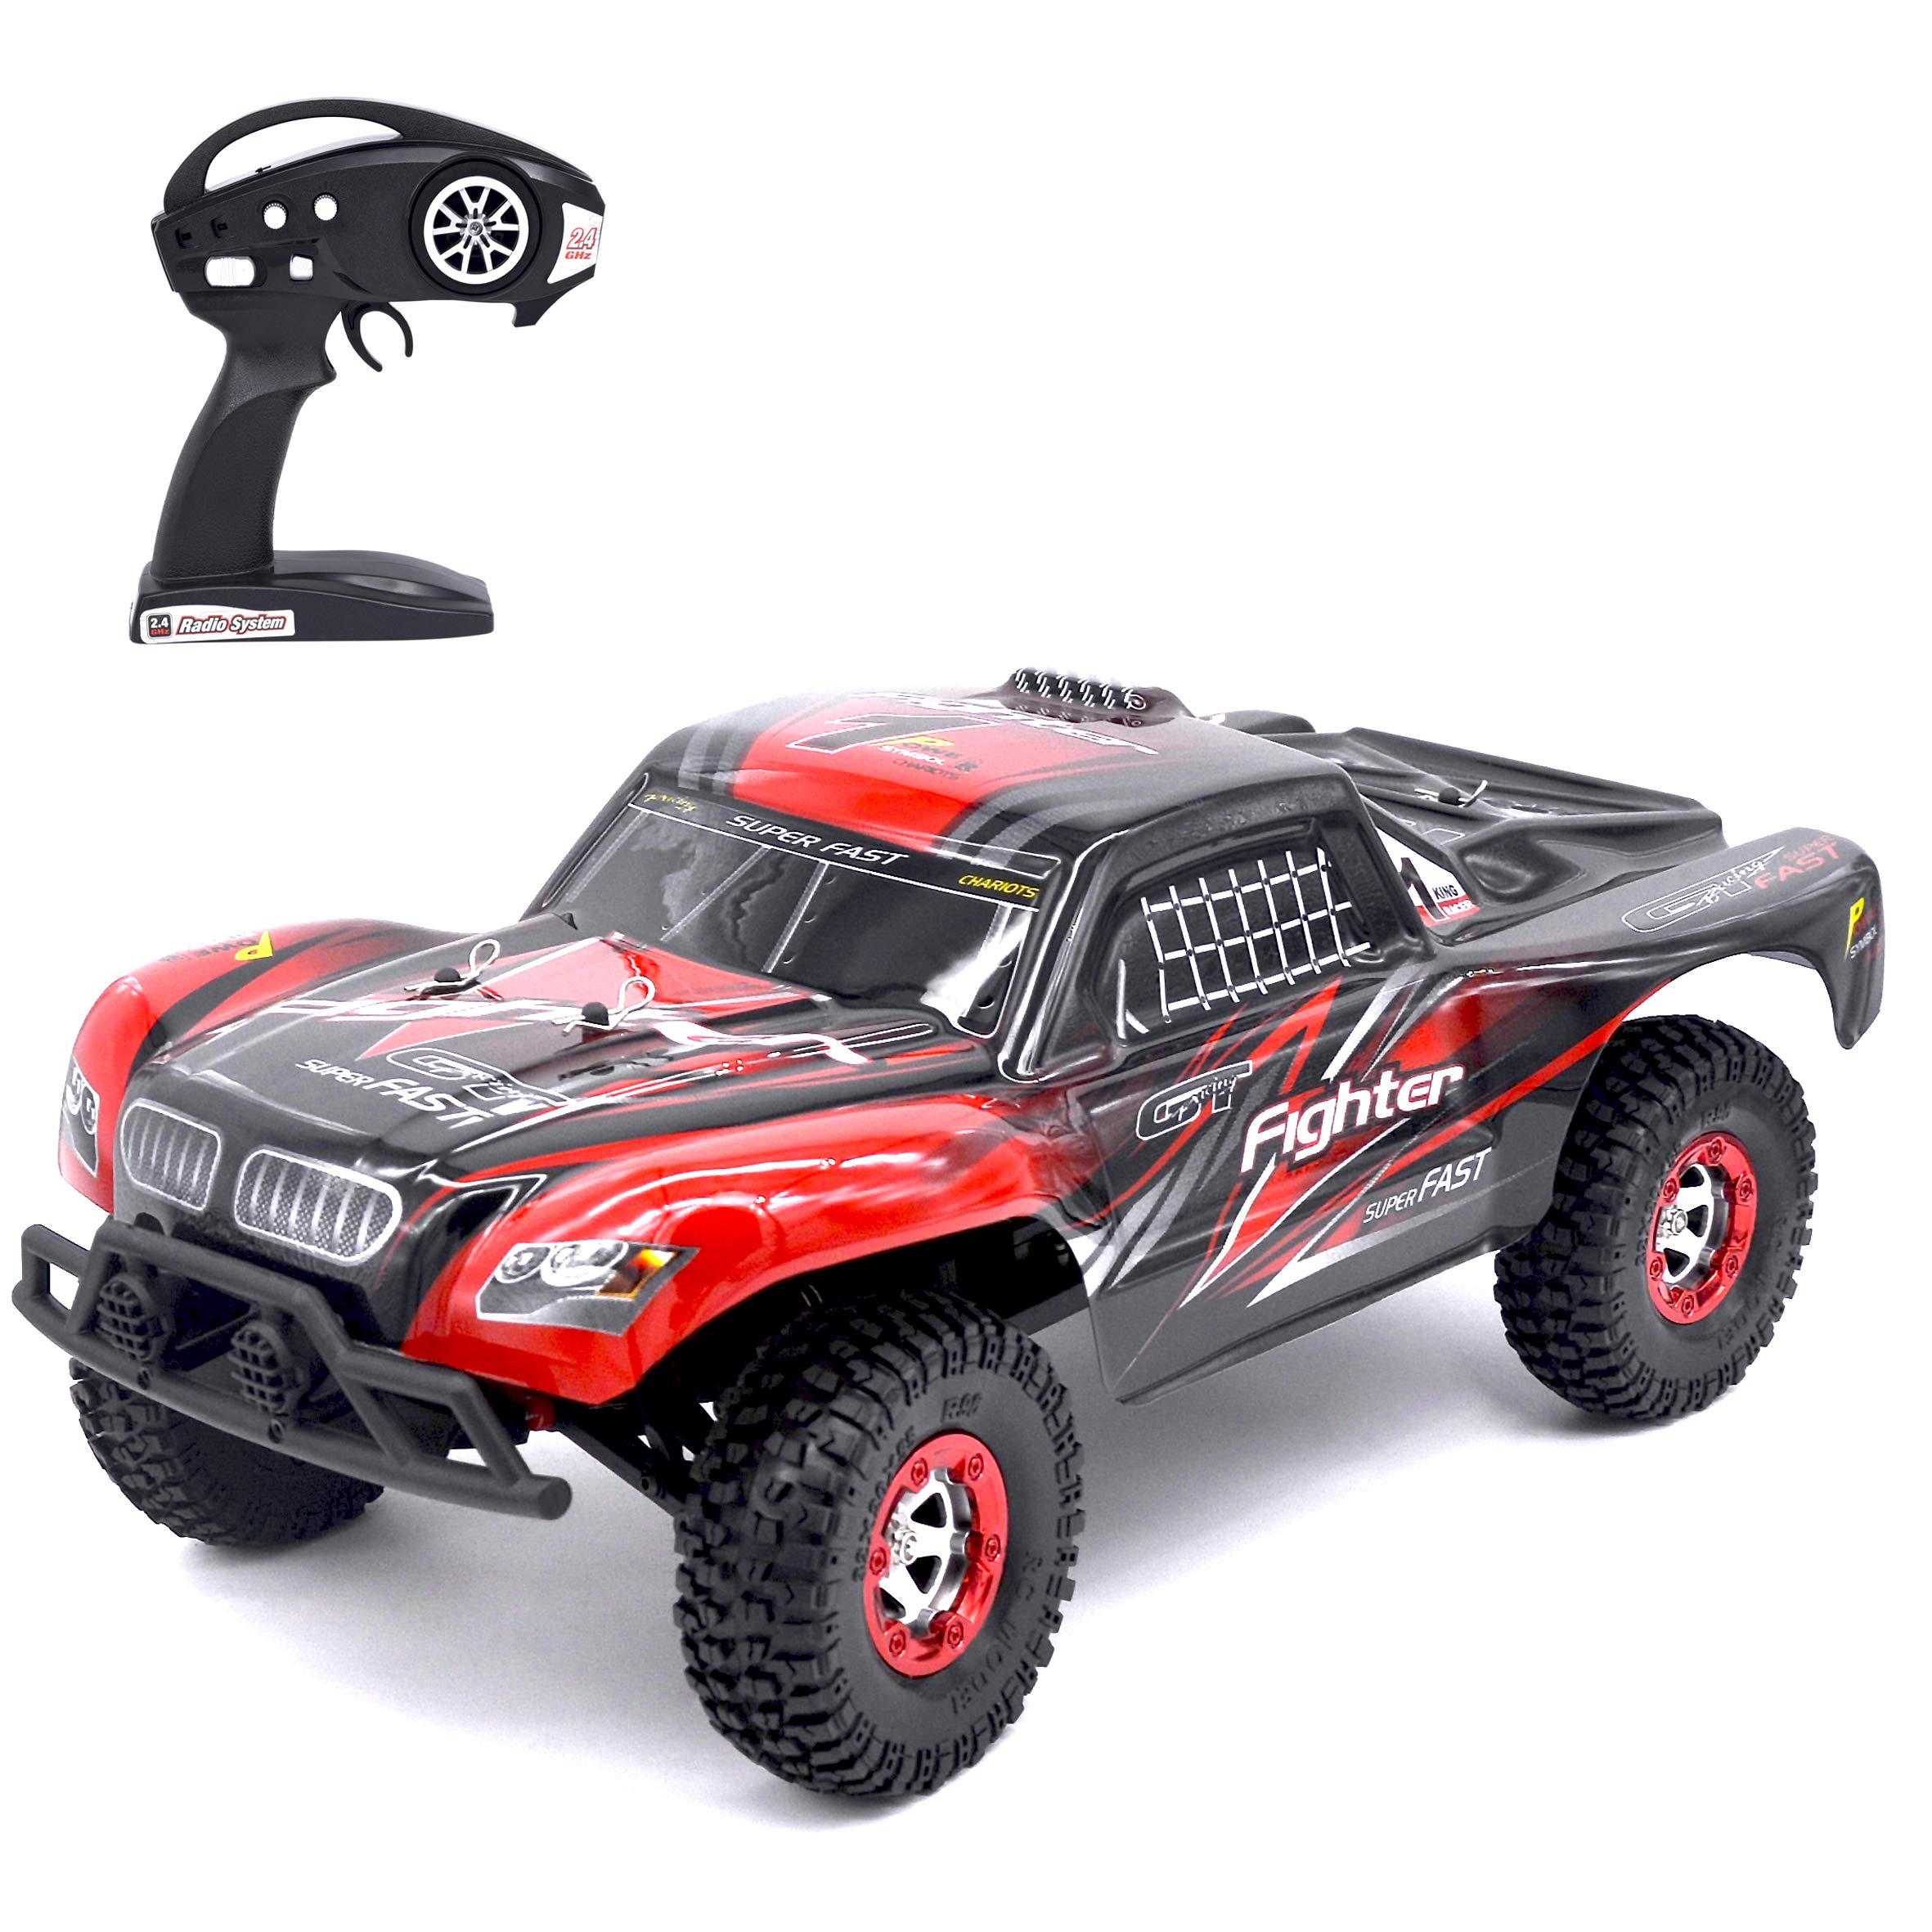 KELIWOW Electric High Speed RC Truck,1/12 4WD RC Buggy 2.4GHz Remote Control Car,40+MPH RC Rock Off-Road Crawler Brushless RTR,Red